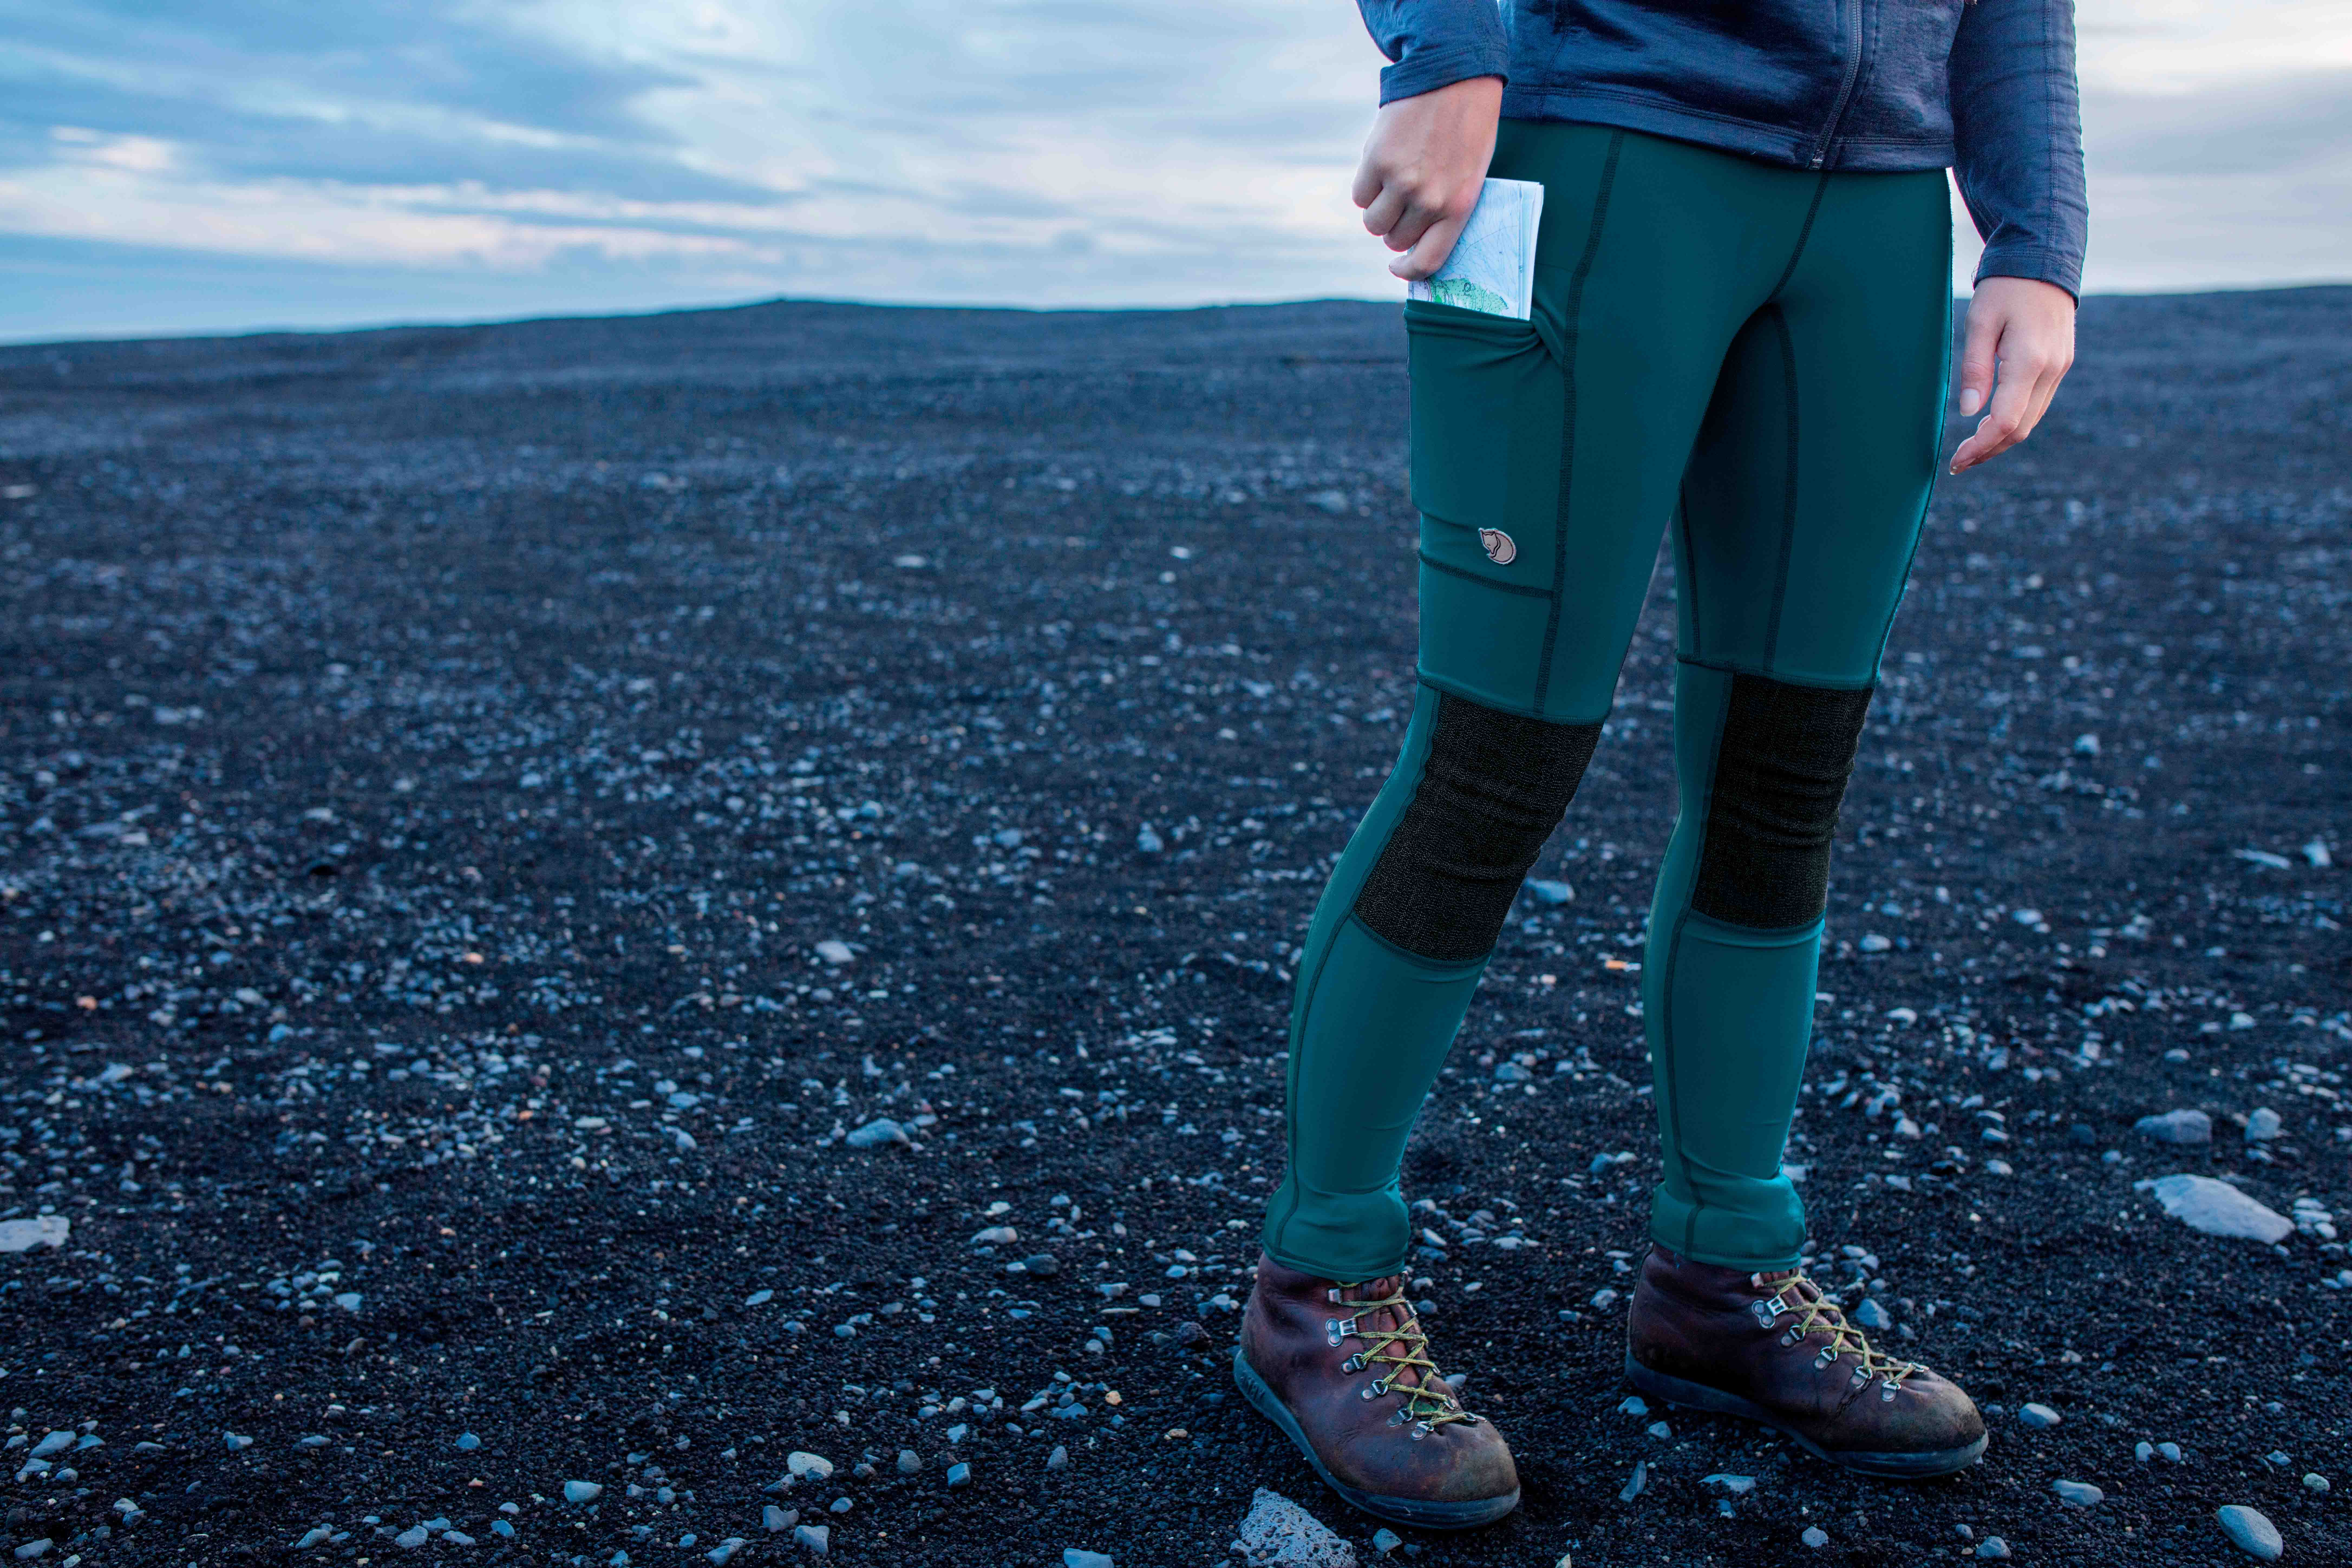 The New Age of Outdoor Legwear